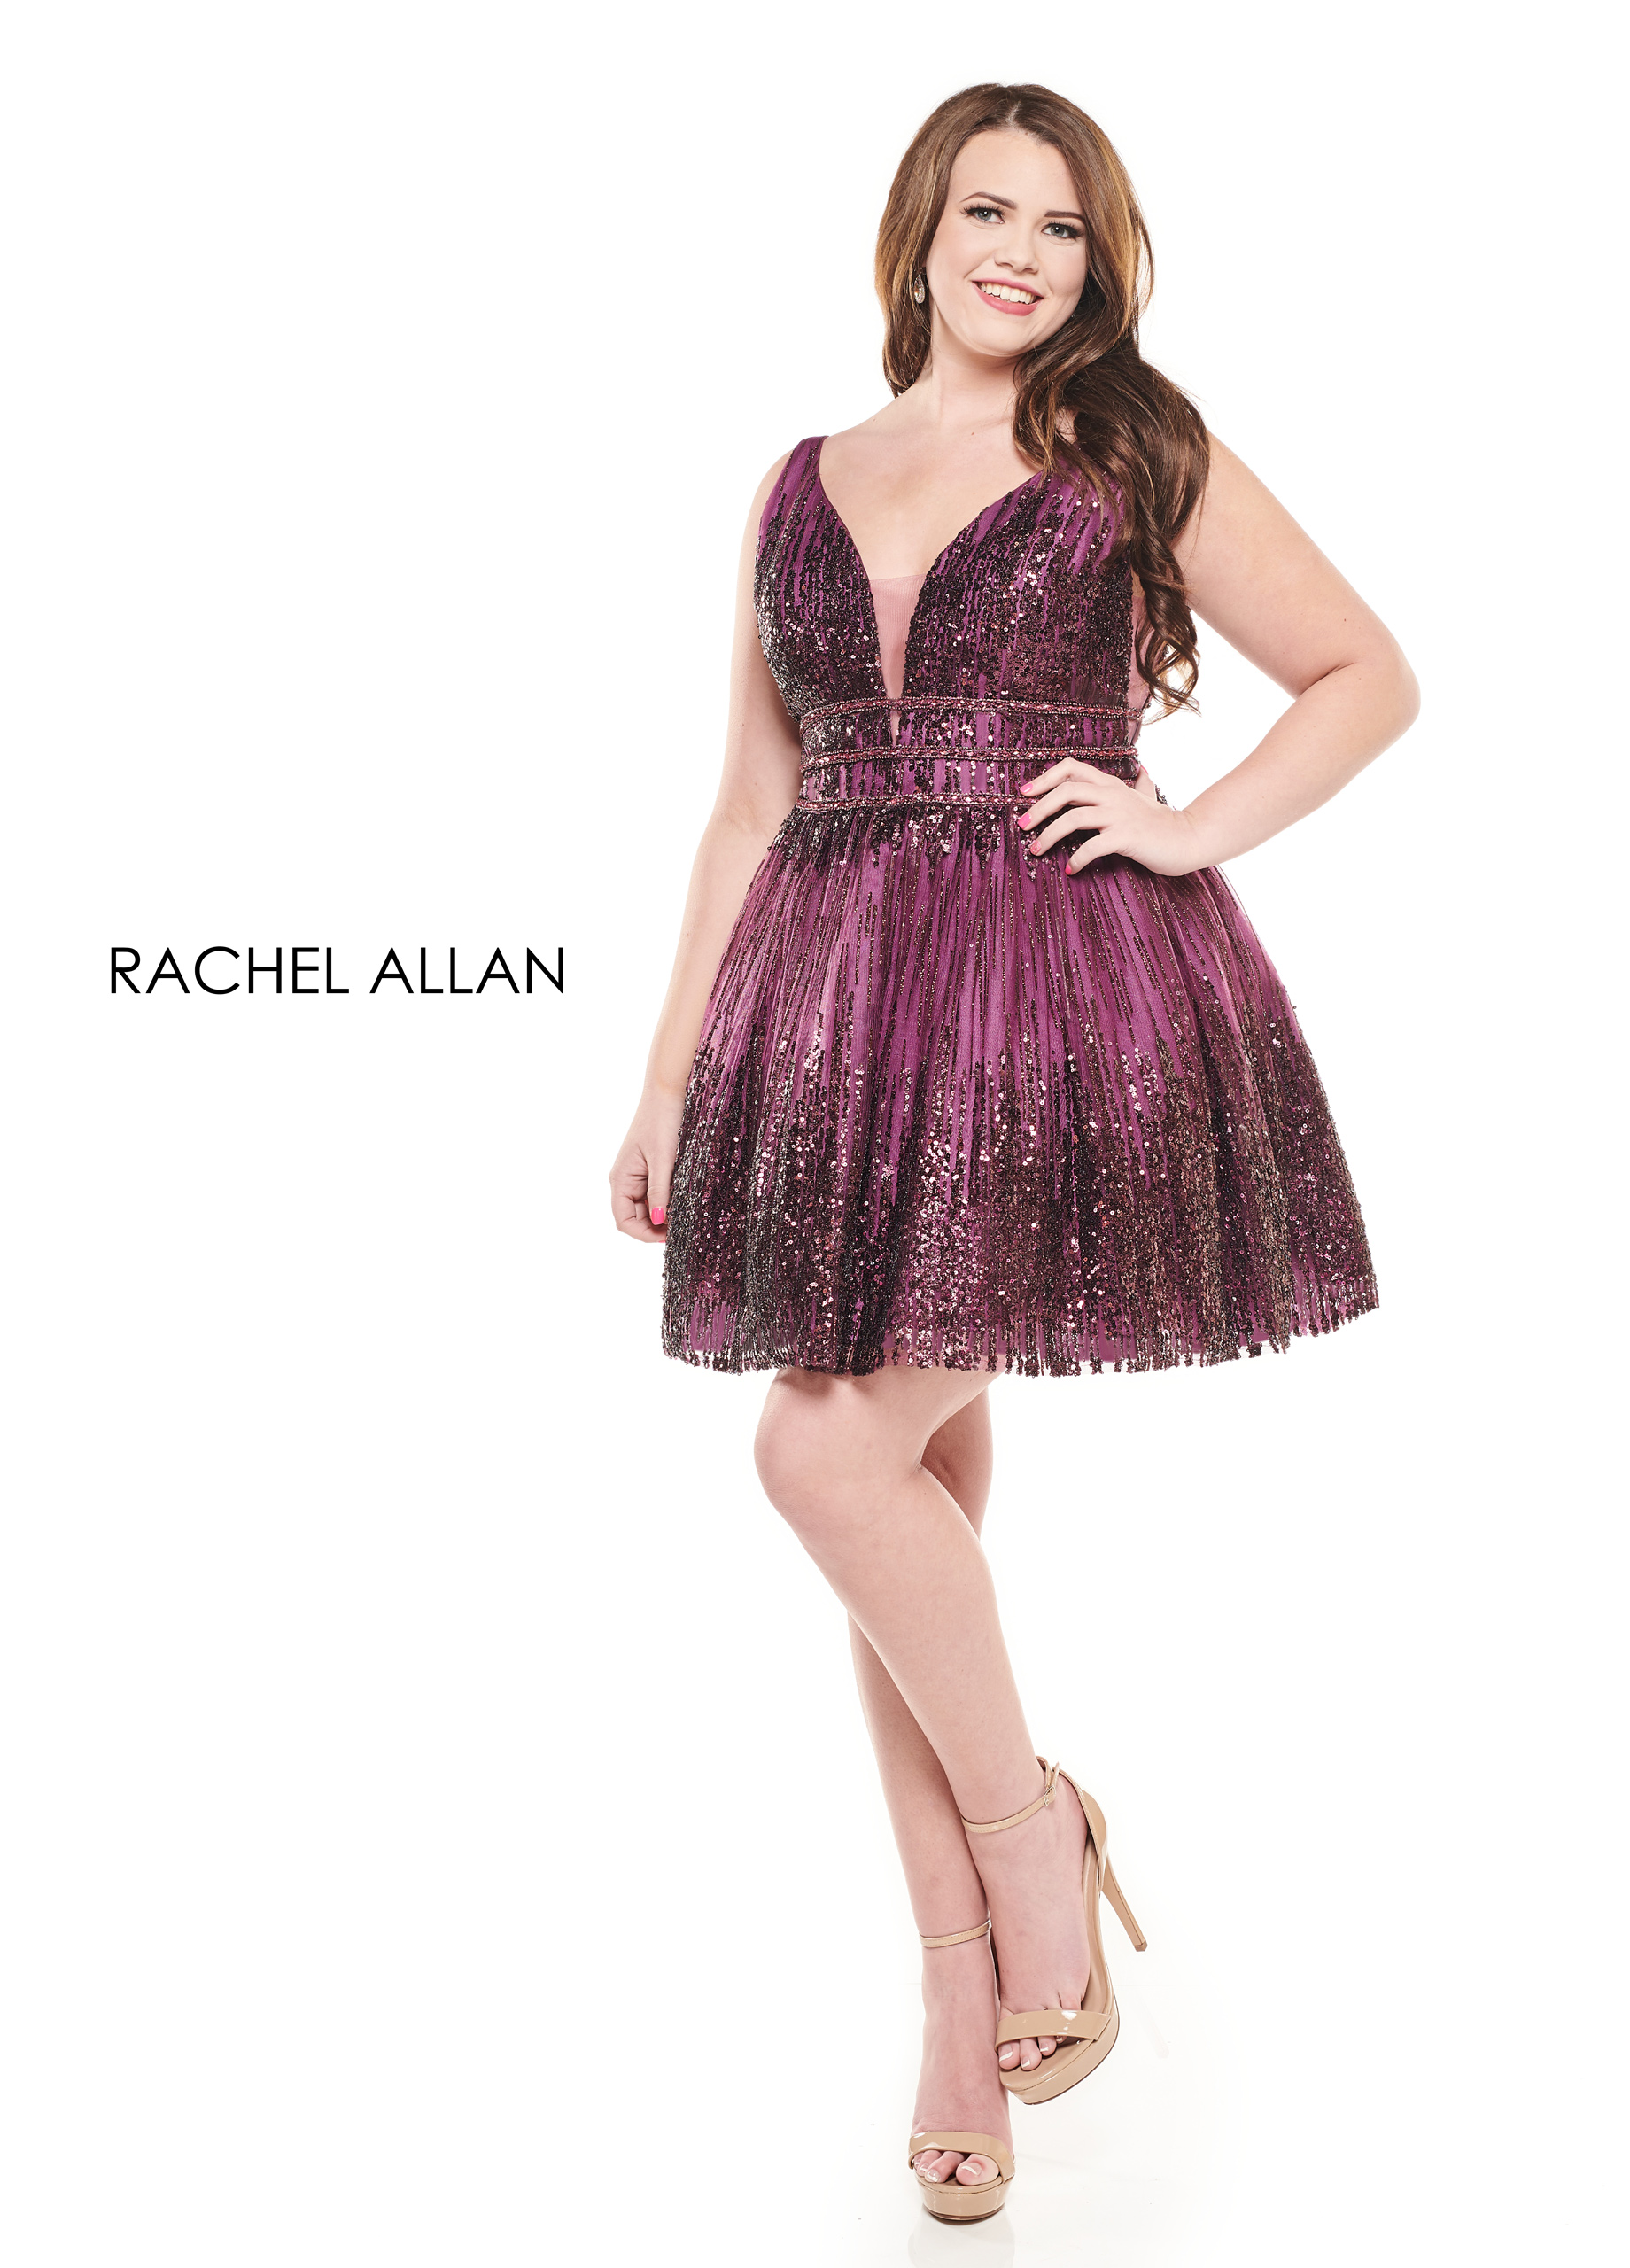 V-Neck Full Skirt Mini Homecoming Curves in Purple Color